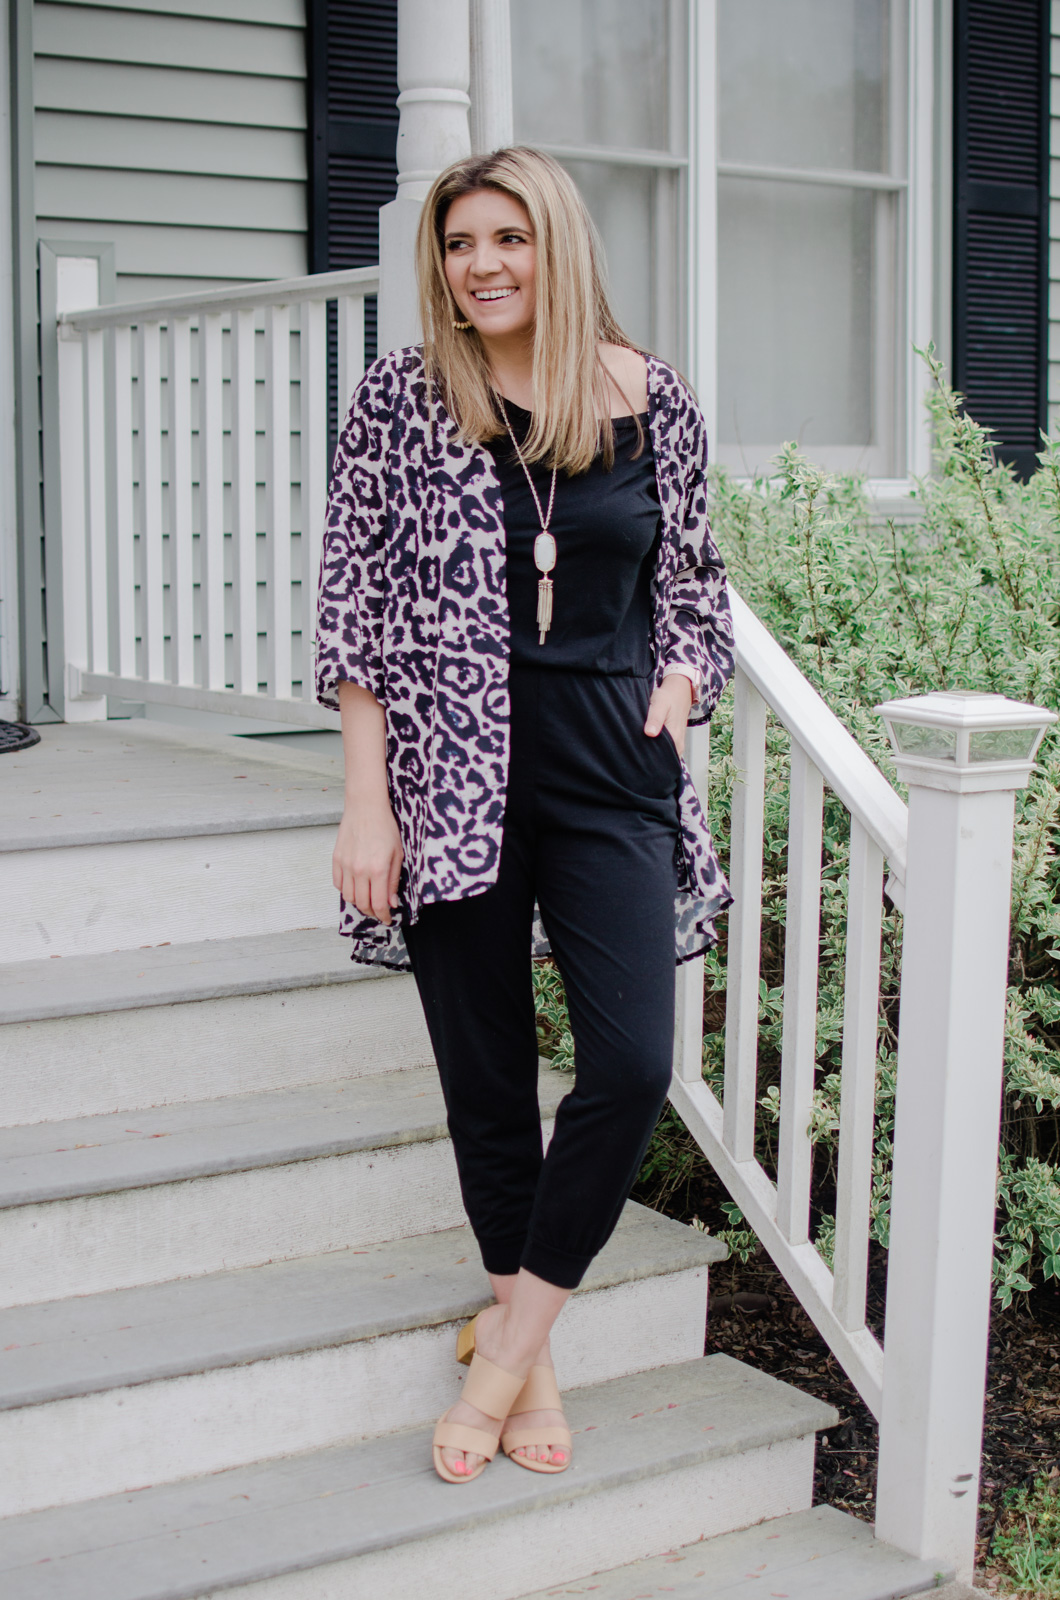 bc43461a7 Wondering how to wear a kimono? Virginia style blogger Lauren Dix shares  six kimono outfits